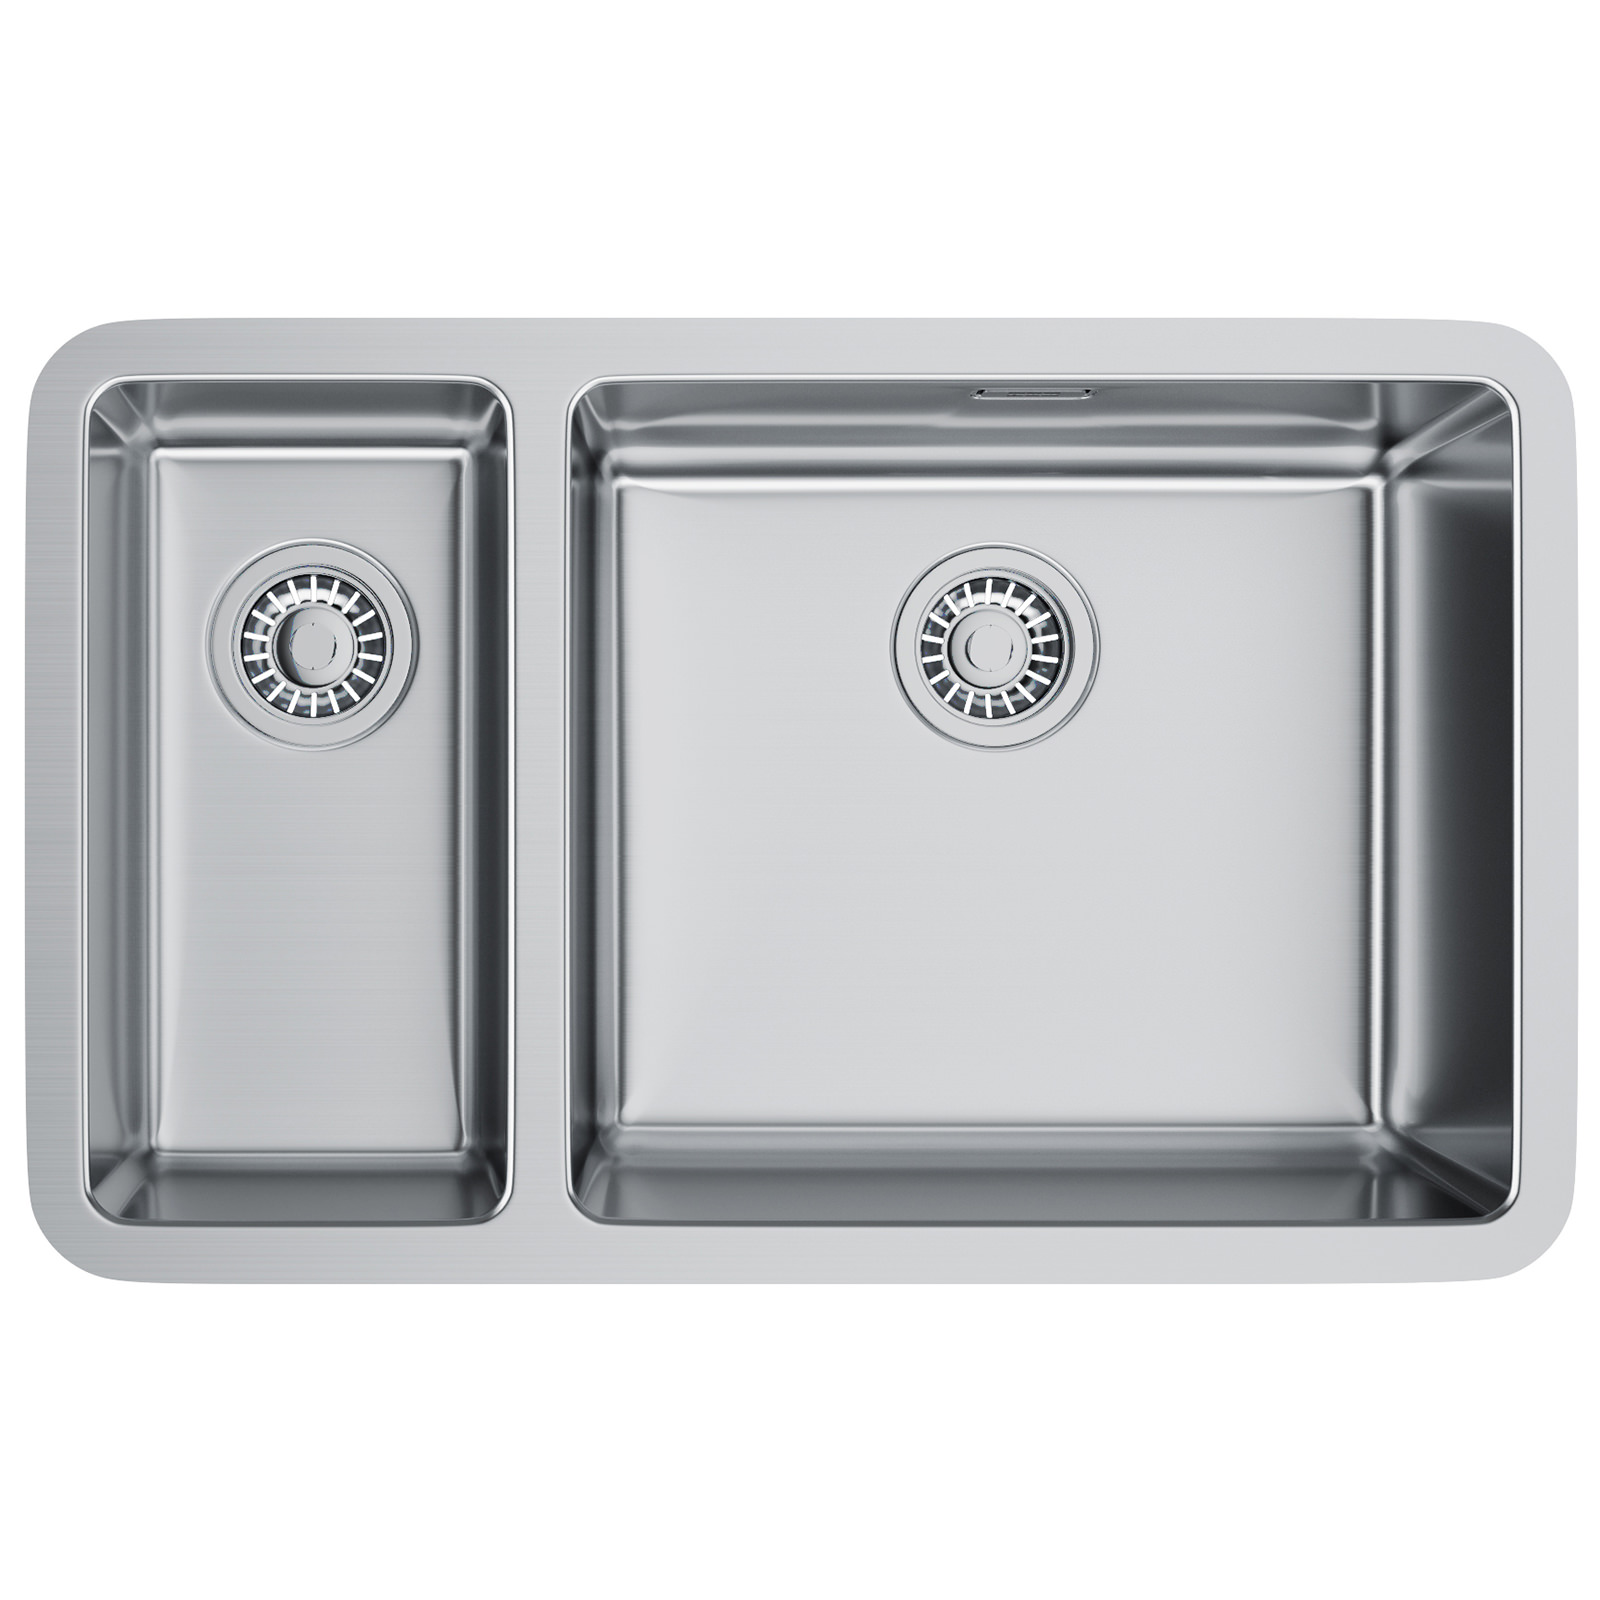 Franke Kitchen Sinks : Franke Kubus KBX 160 45-20 Stainless Steel Undermount Kitchen Sink ...